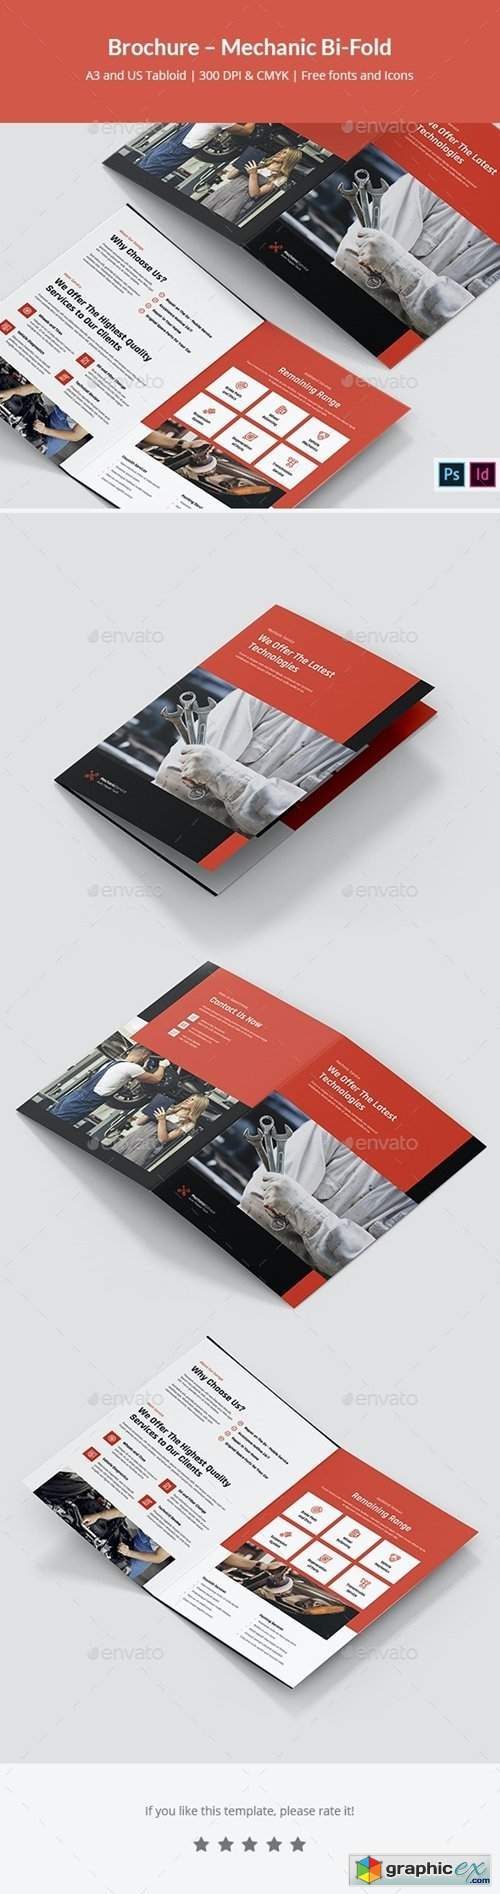 Brochure – Mechanic Bi-Fold